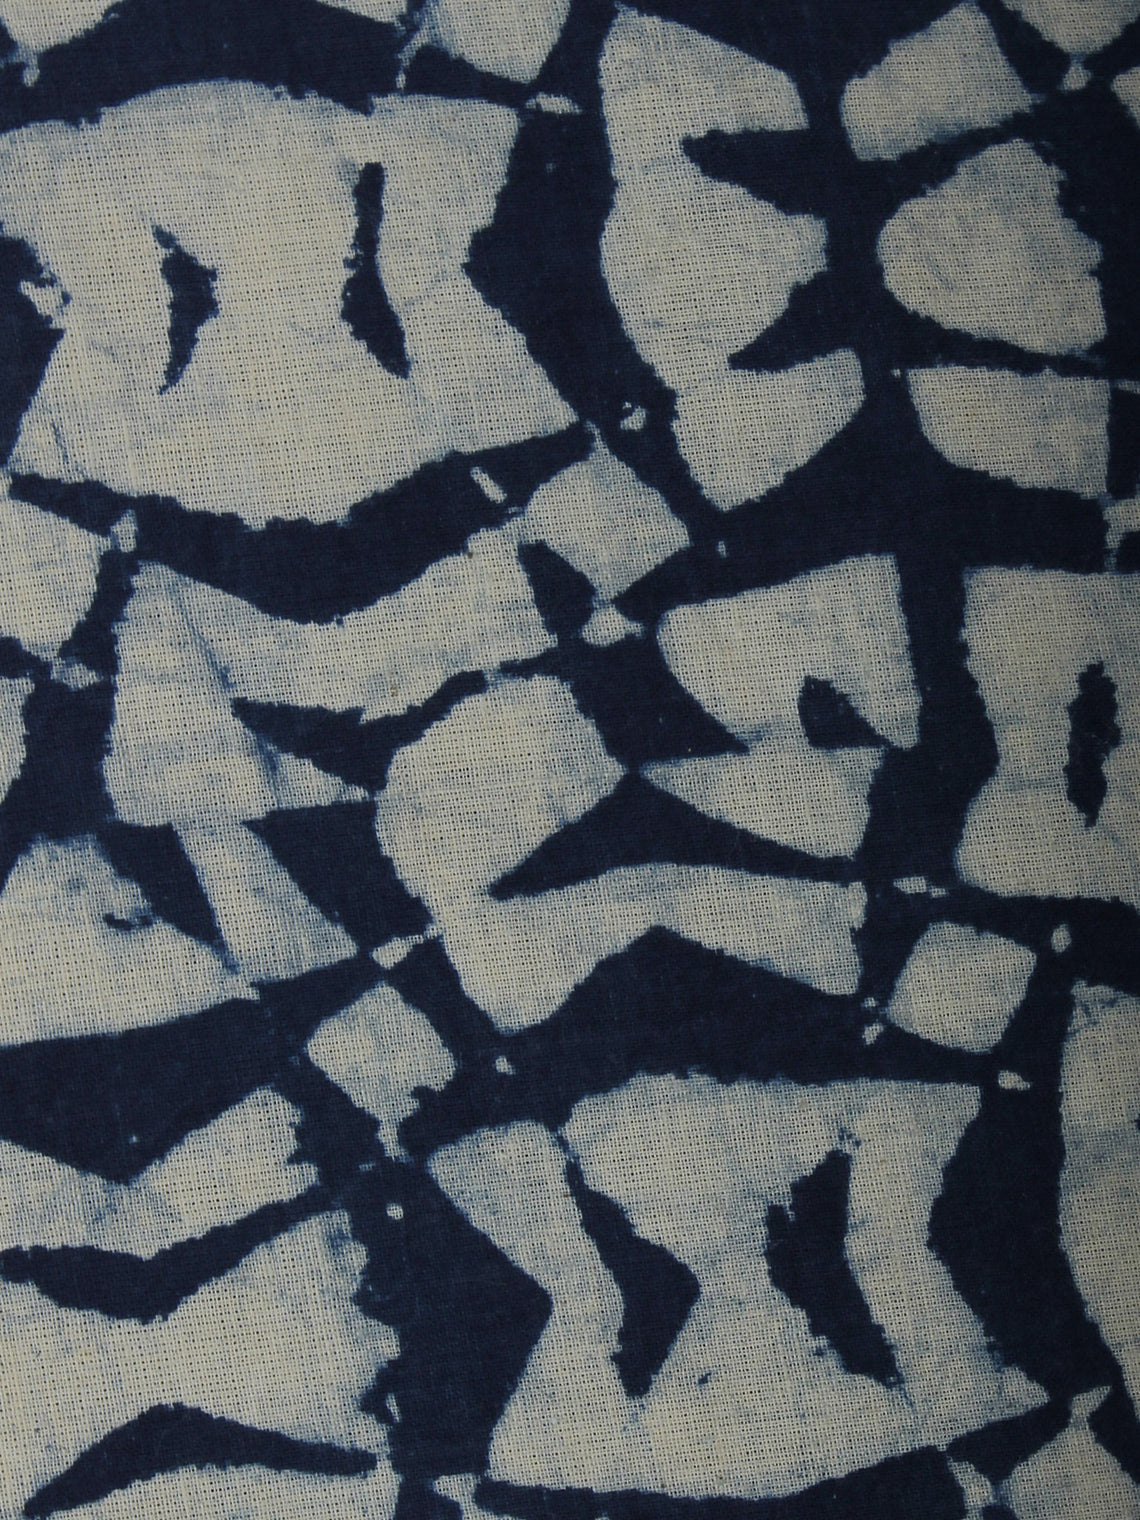 Indigo White Hand Block Printed Cotton Cambric Fabric Per Meter - F0916013